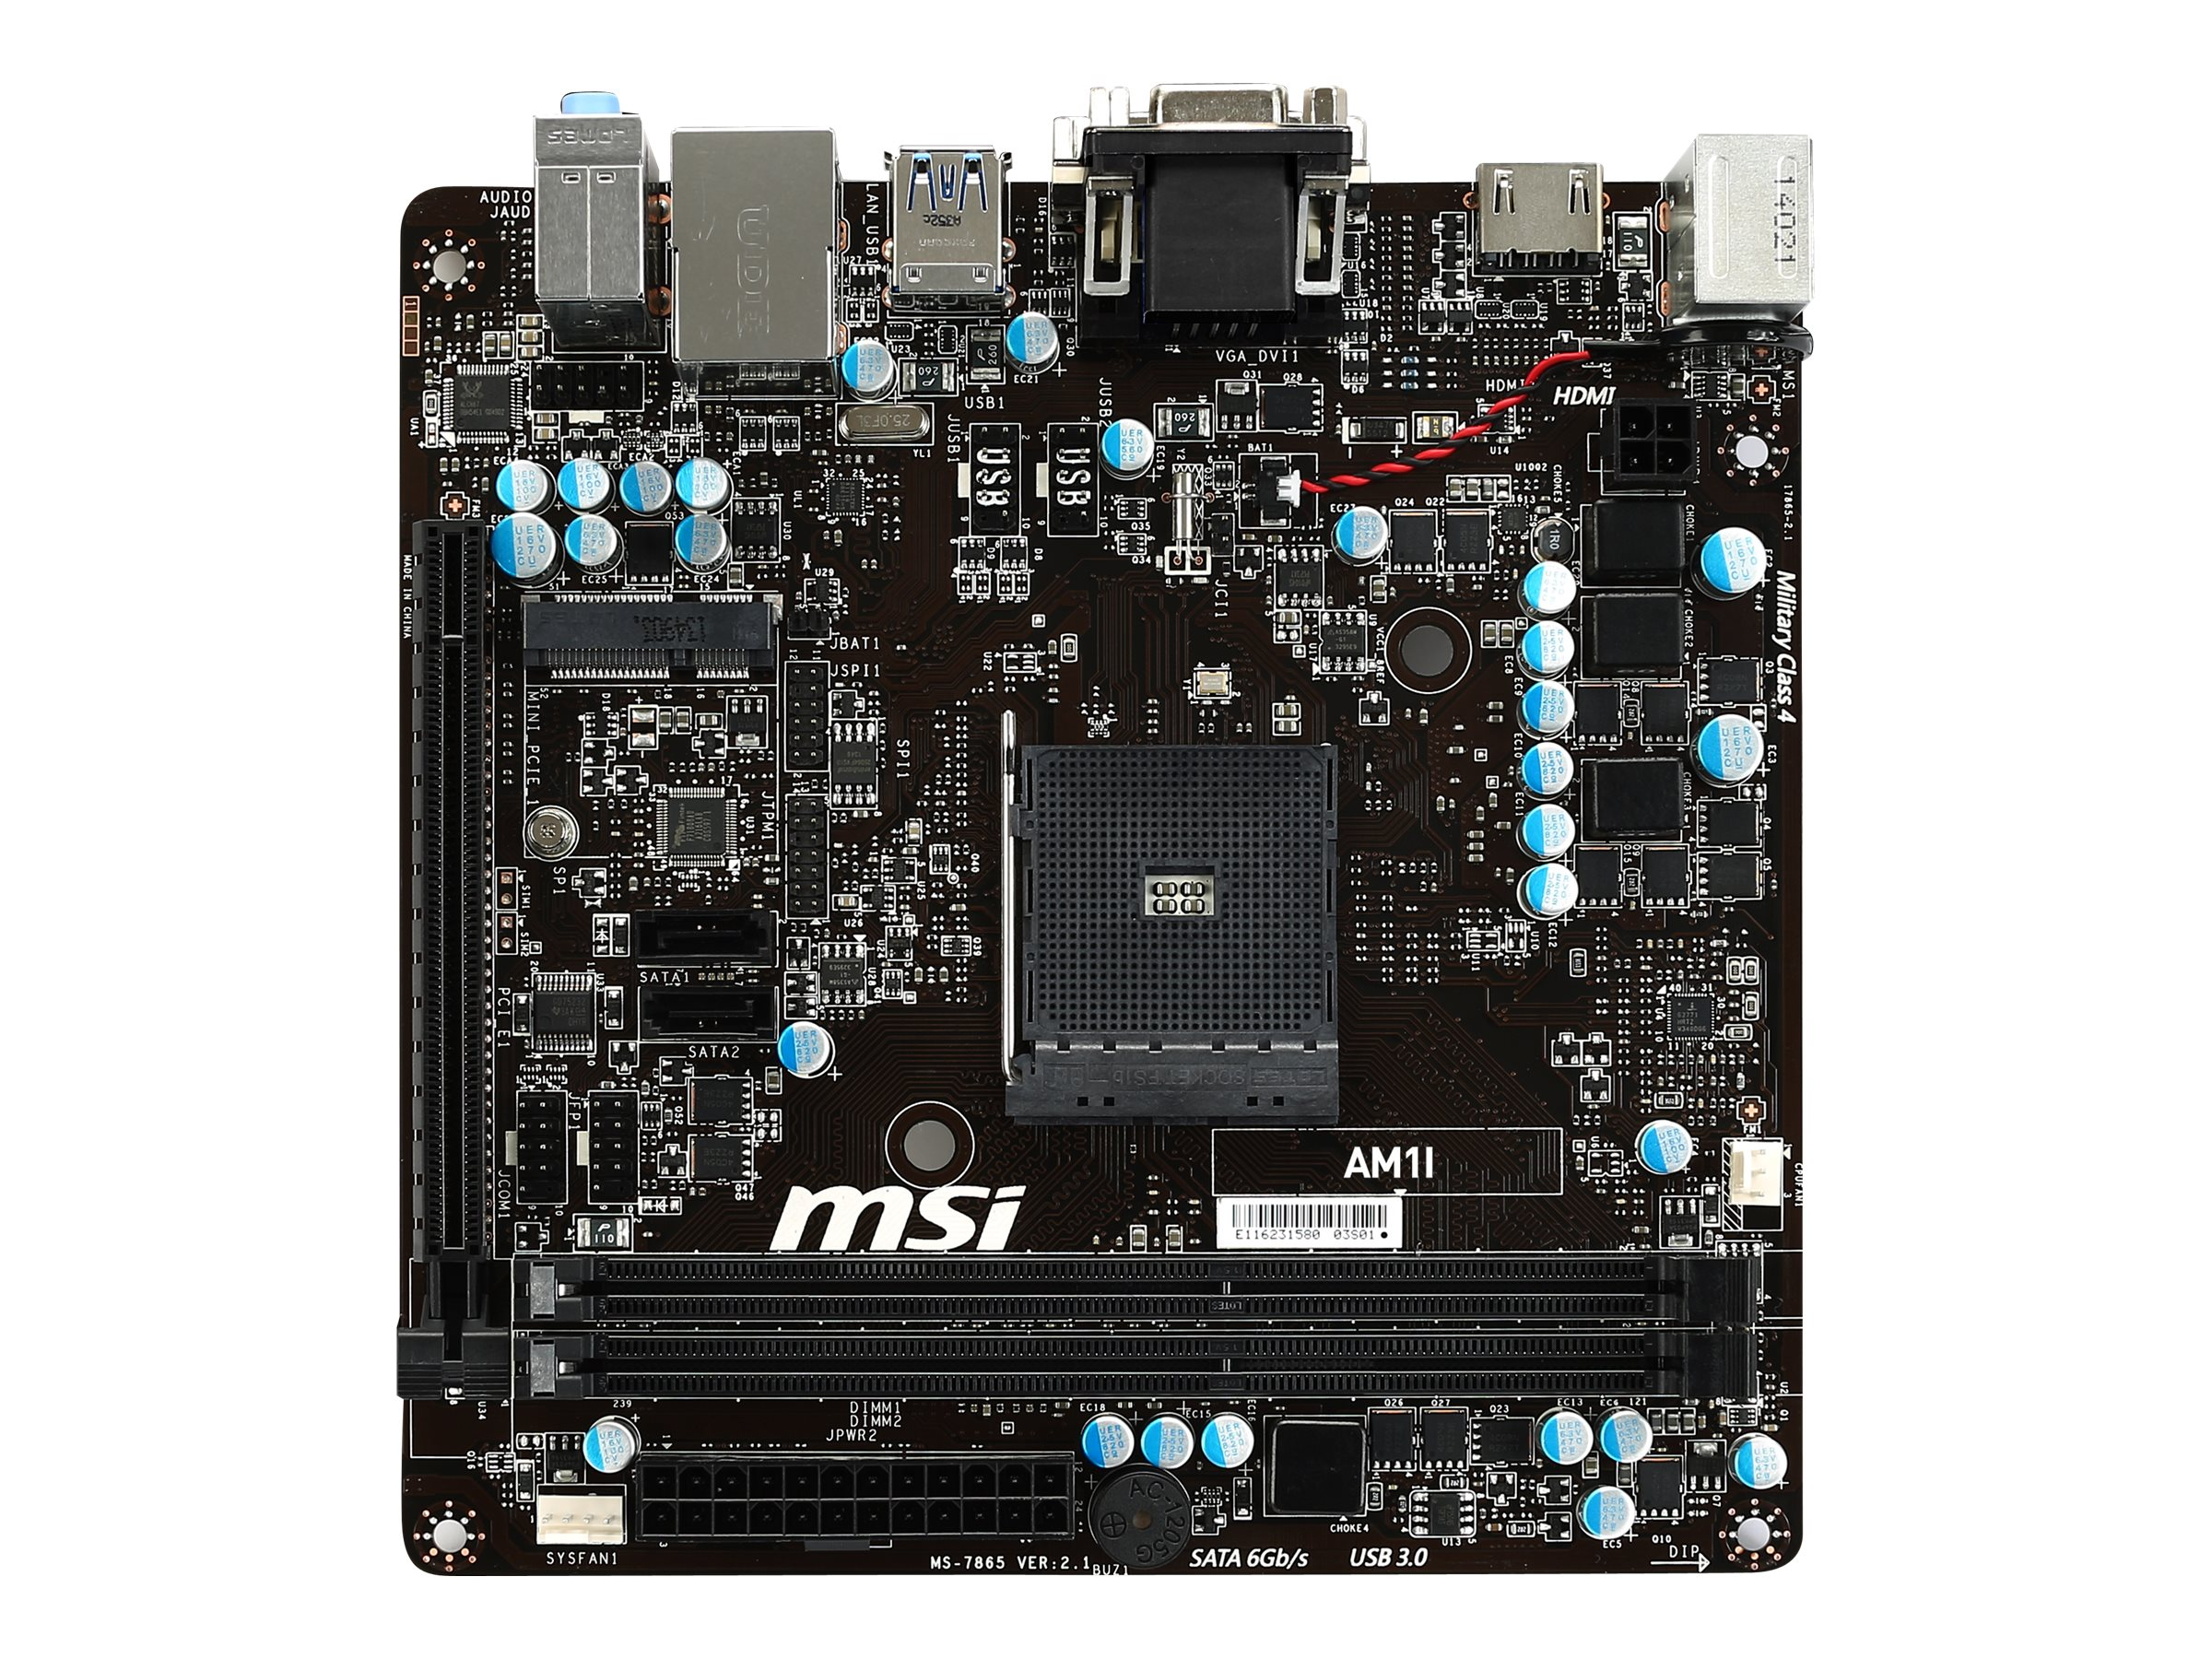 Microstar Motherboard, Mini-ITX AM1 Athlon Sempron Max.32GB DDR3 2xSATA PCIe GbE, AM1I, 17269621, Motherboards